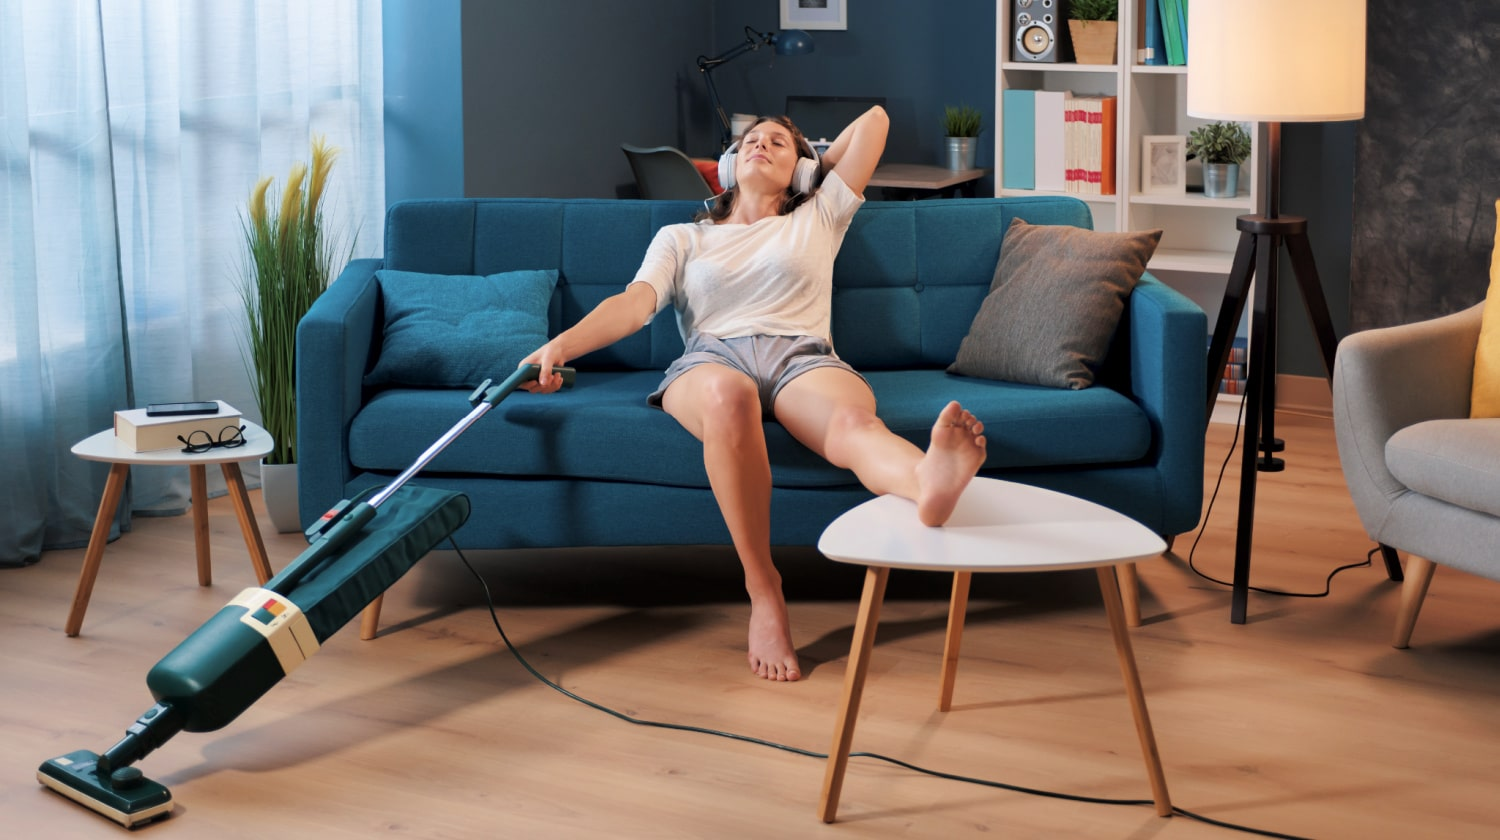 Woman in the middle of cleaning sits on sofa listening to music